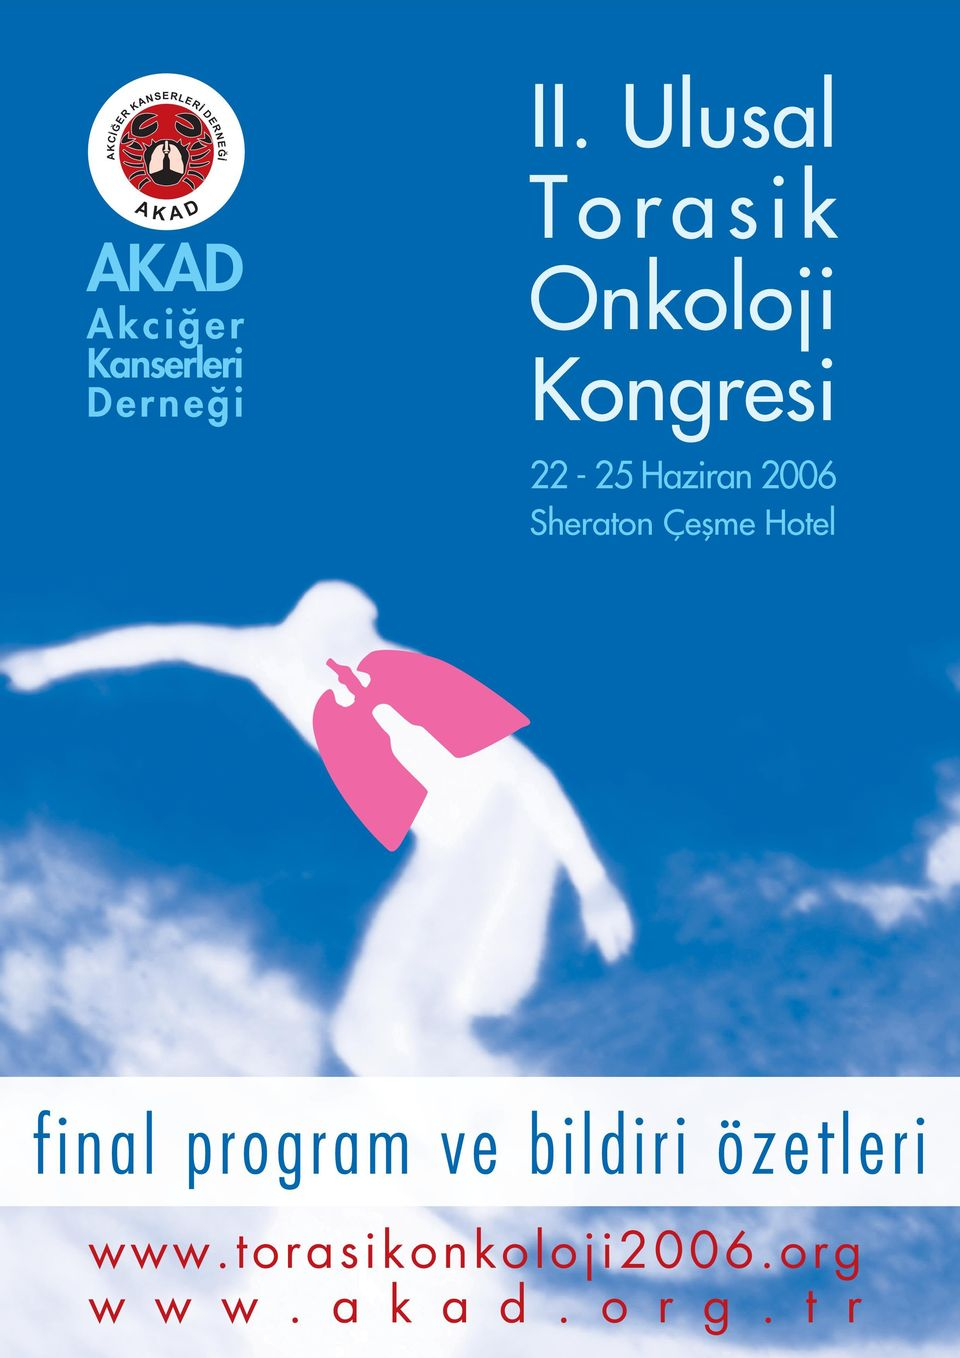 Hotel final program ve bildiri özetleri